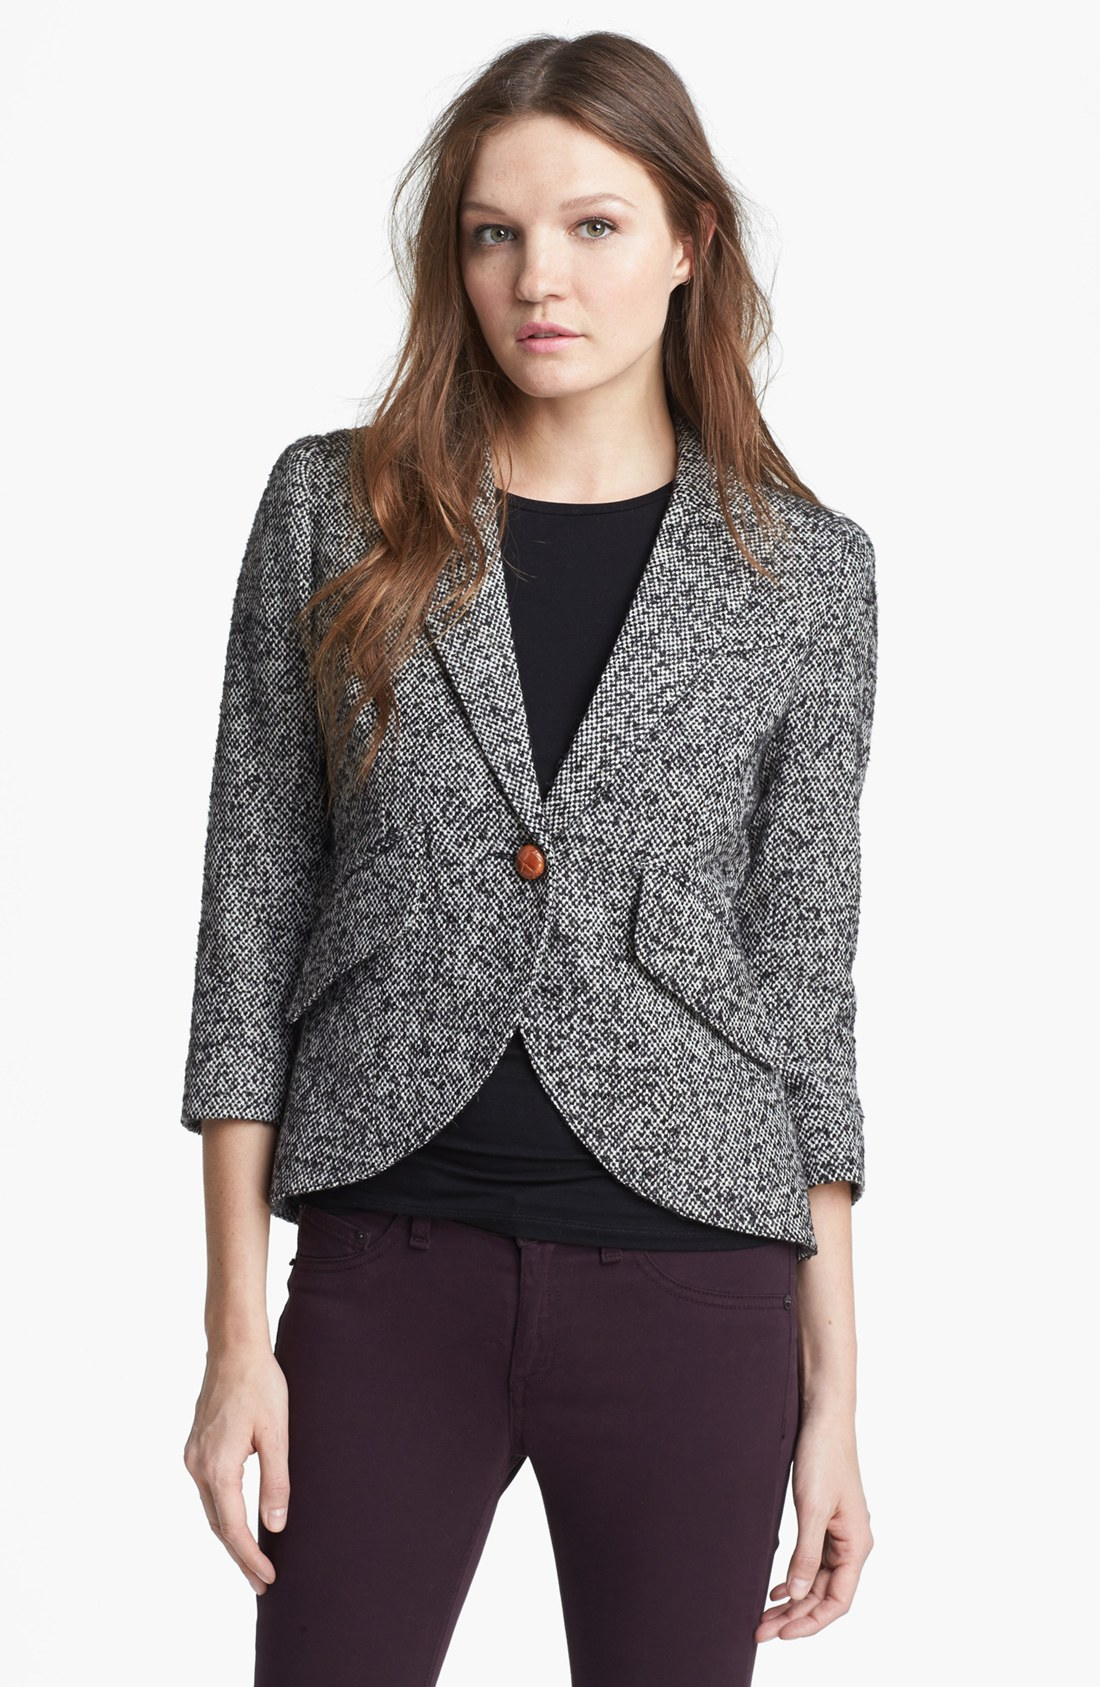 Smythe Elbow Patch Tweed Jacket In White Black White Lyst